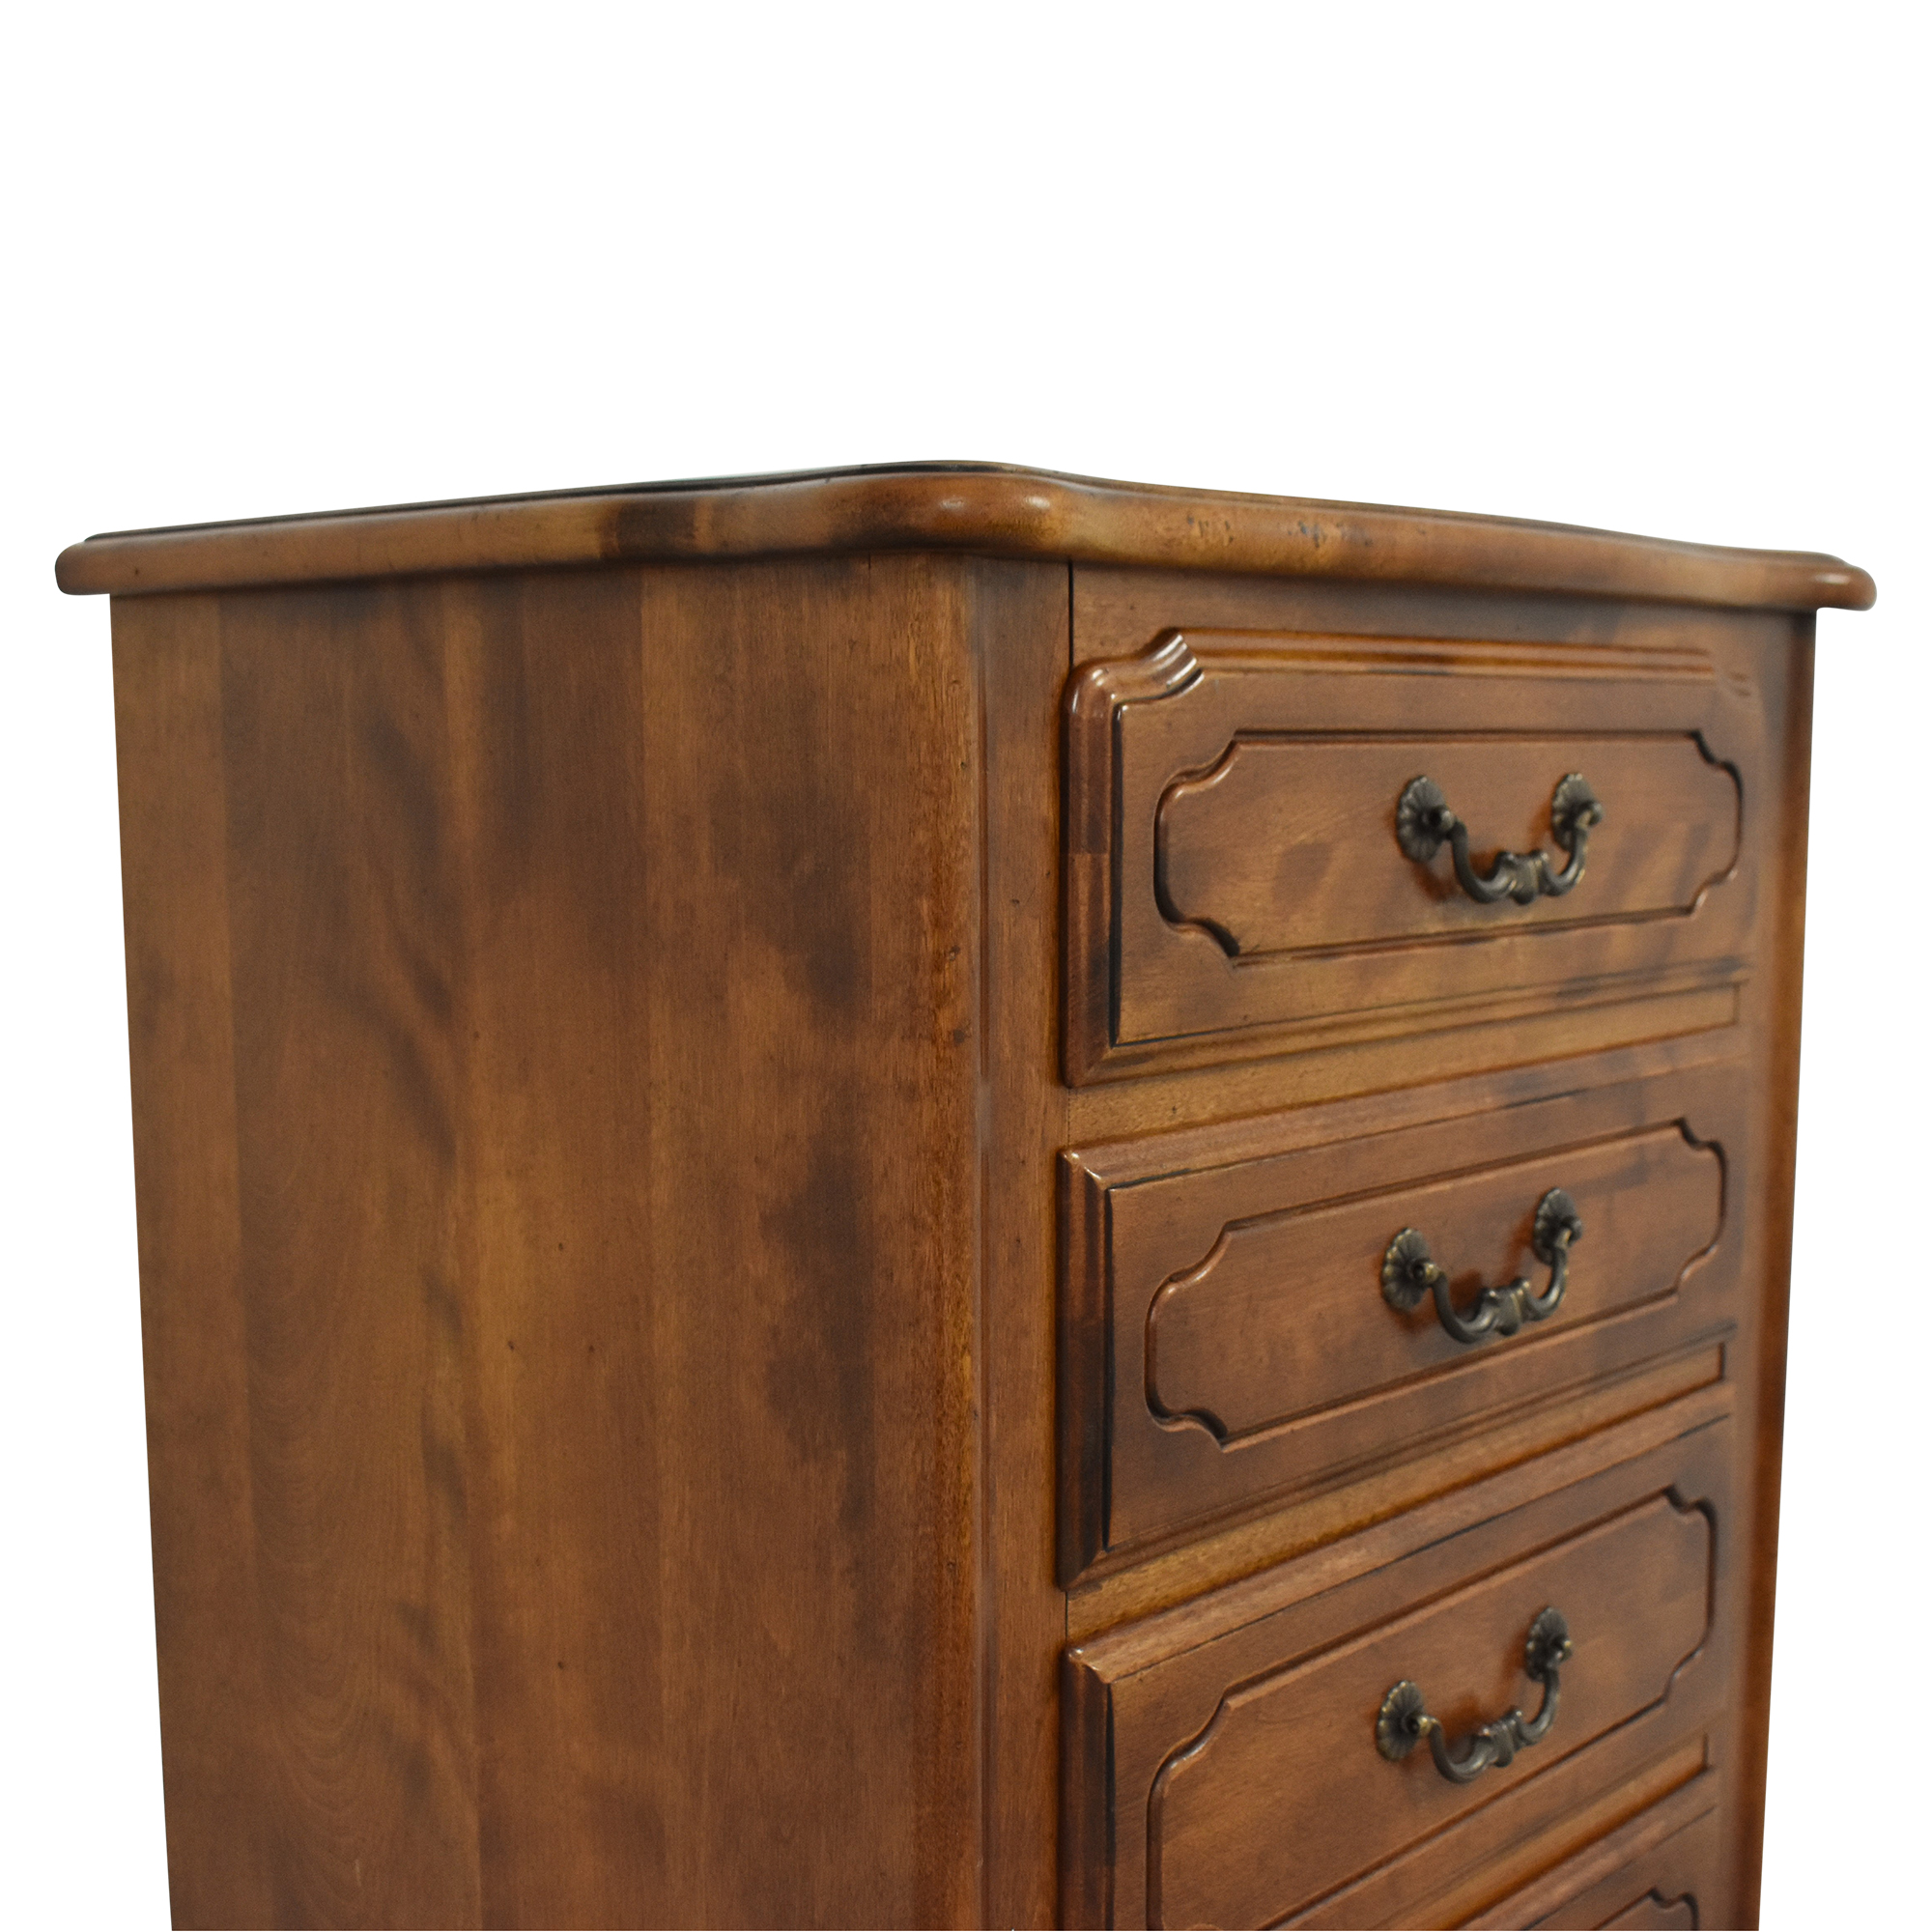 Ethan Allen Ethan Allen Country French Lingerie Chest discount